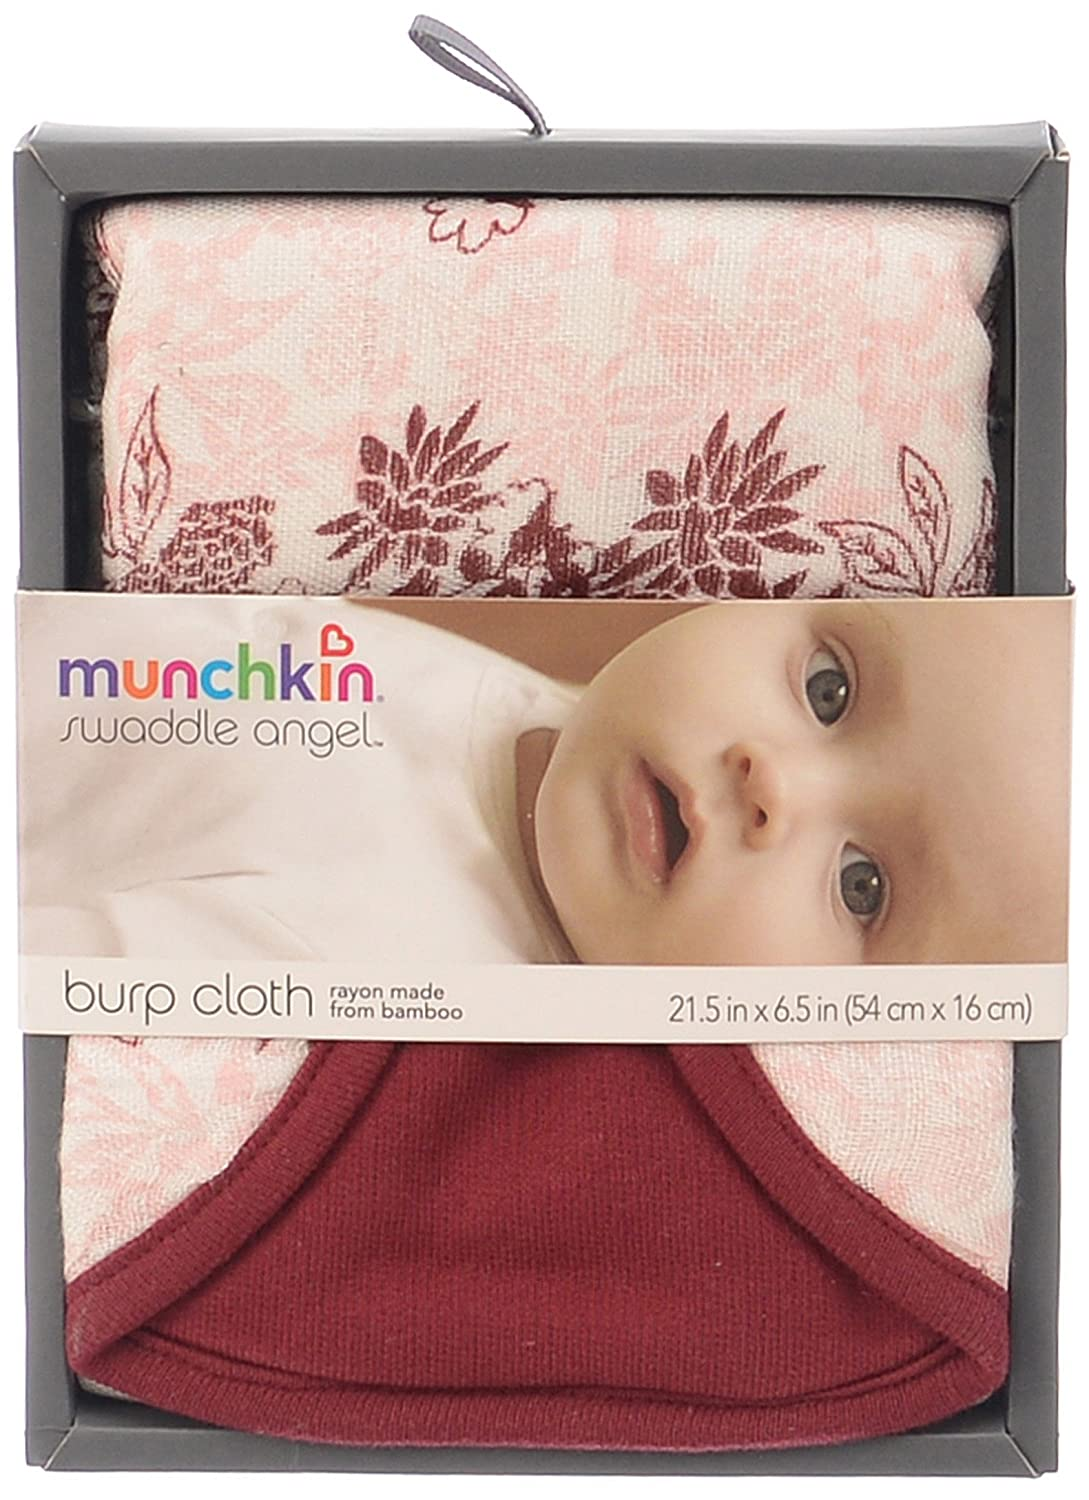 Morning Floral Munchkin Swaddle Angel Lap and Burp Cloth Discontinued by Manufacturer